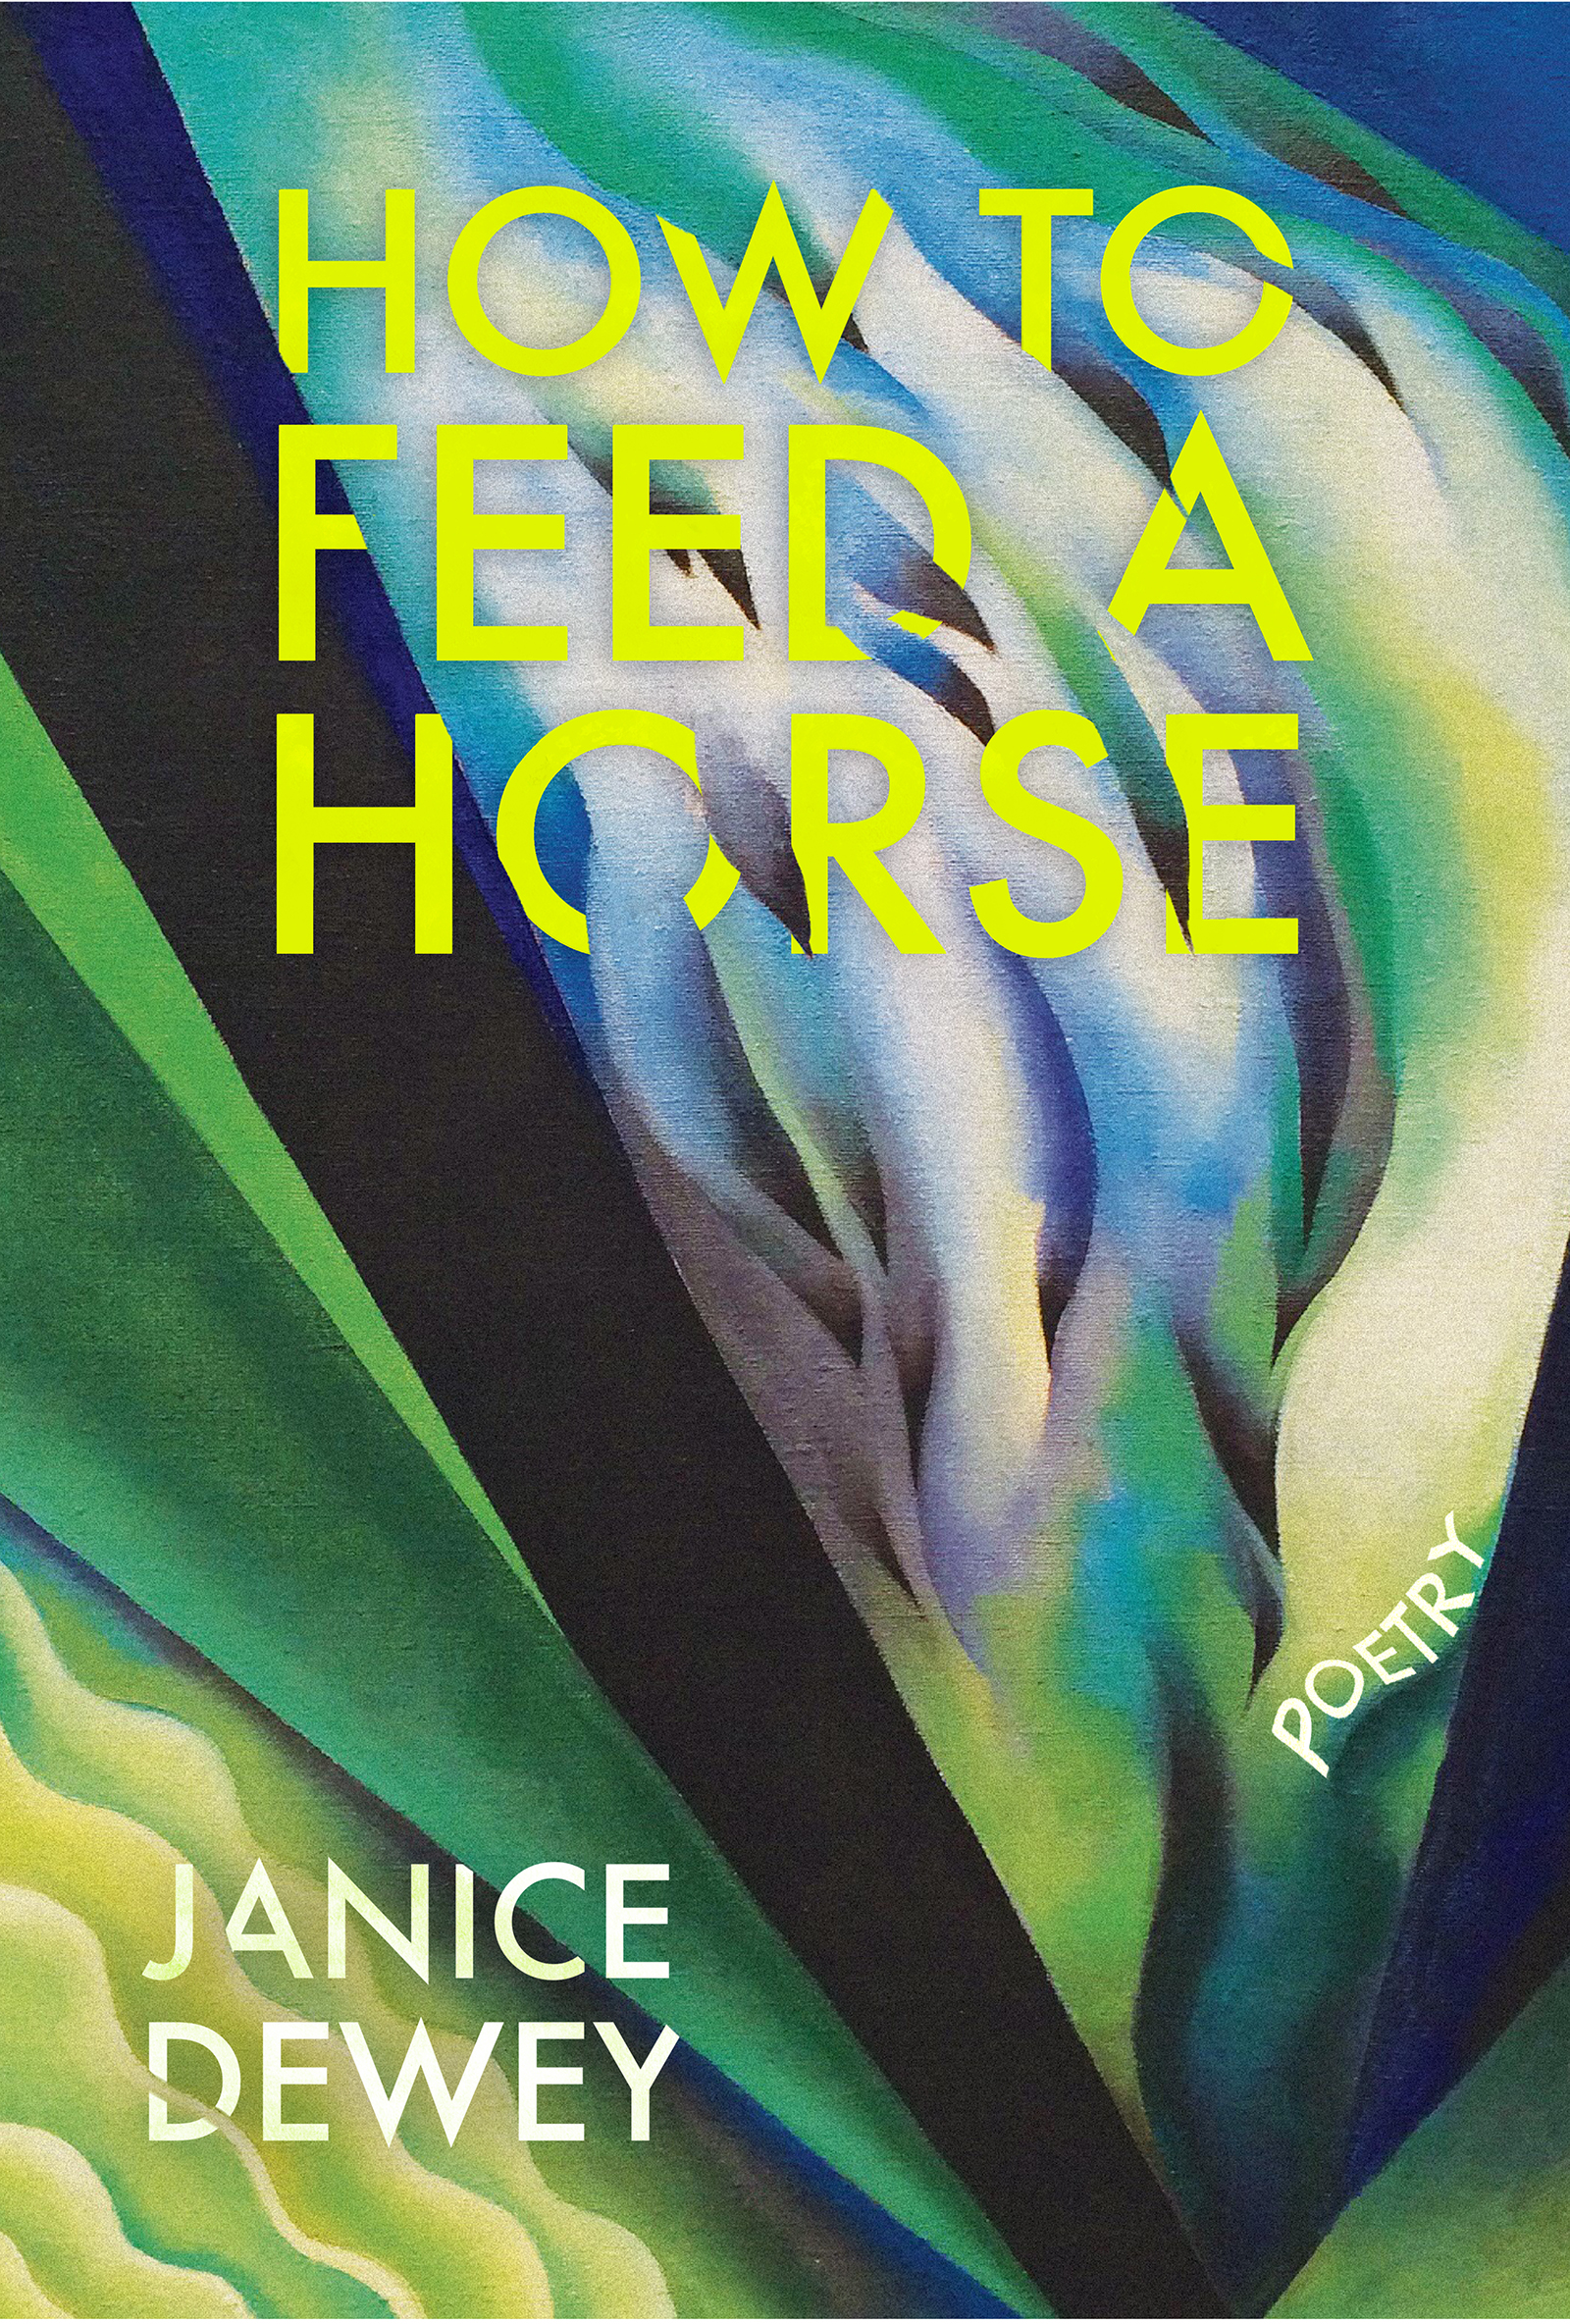 A green and blue abstract design with yellow script on top that reads How to Feed a Horse poetry by Janice Dewey.